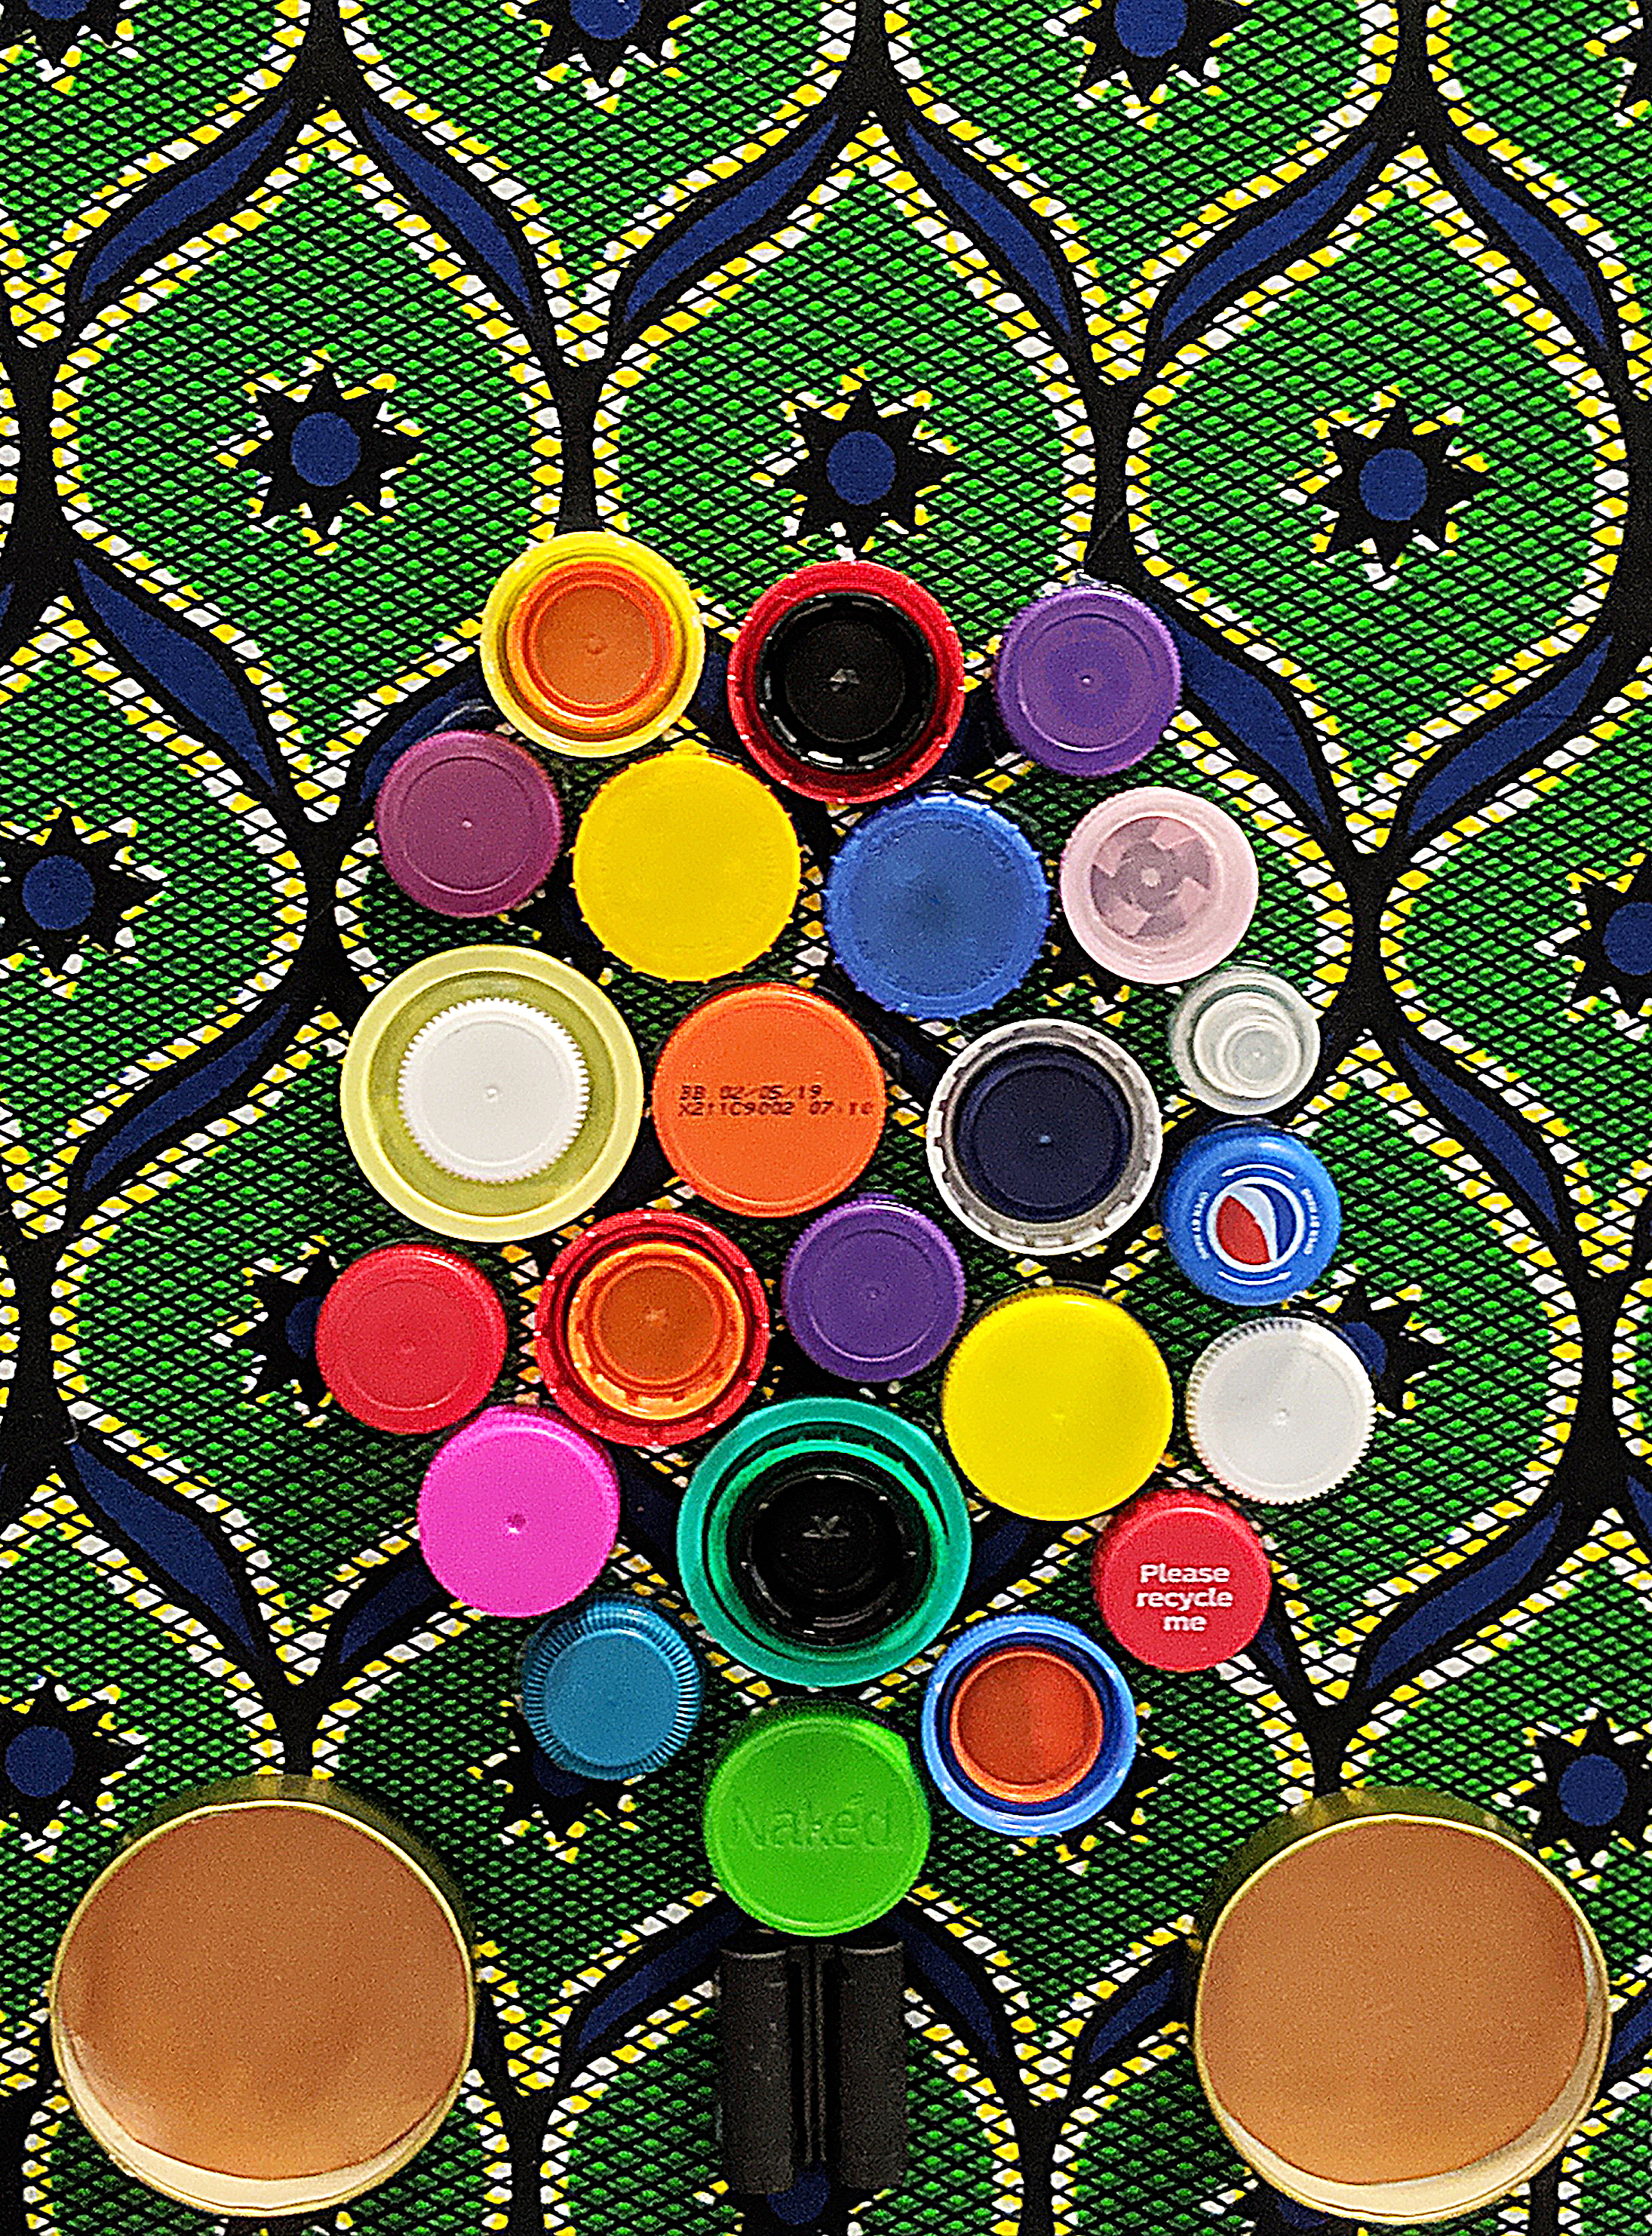 Against the odds - Jam jar lids, bottle tops and fabric on canvas